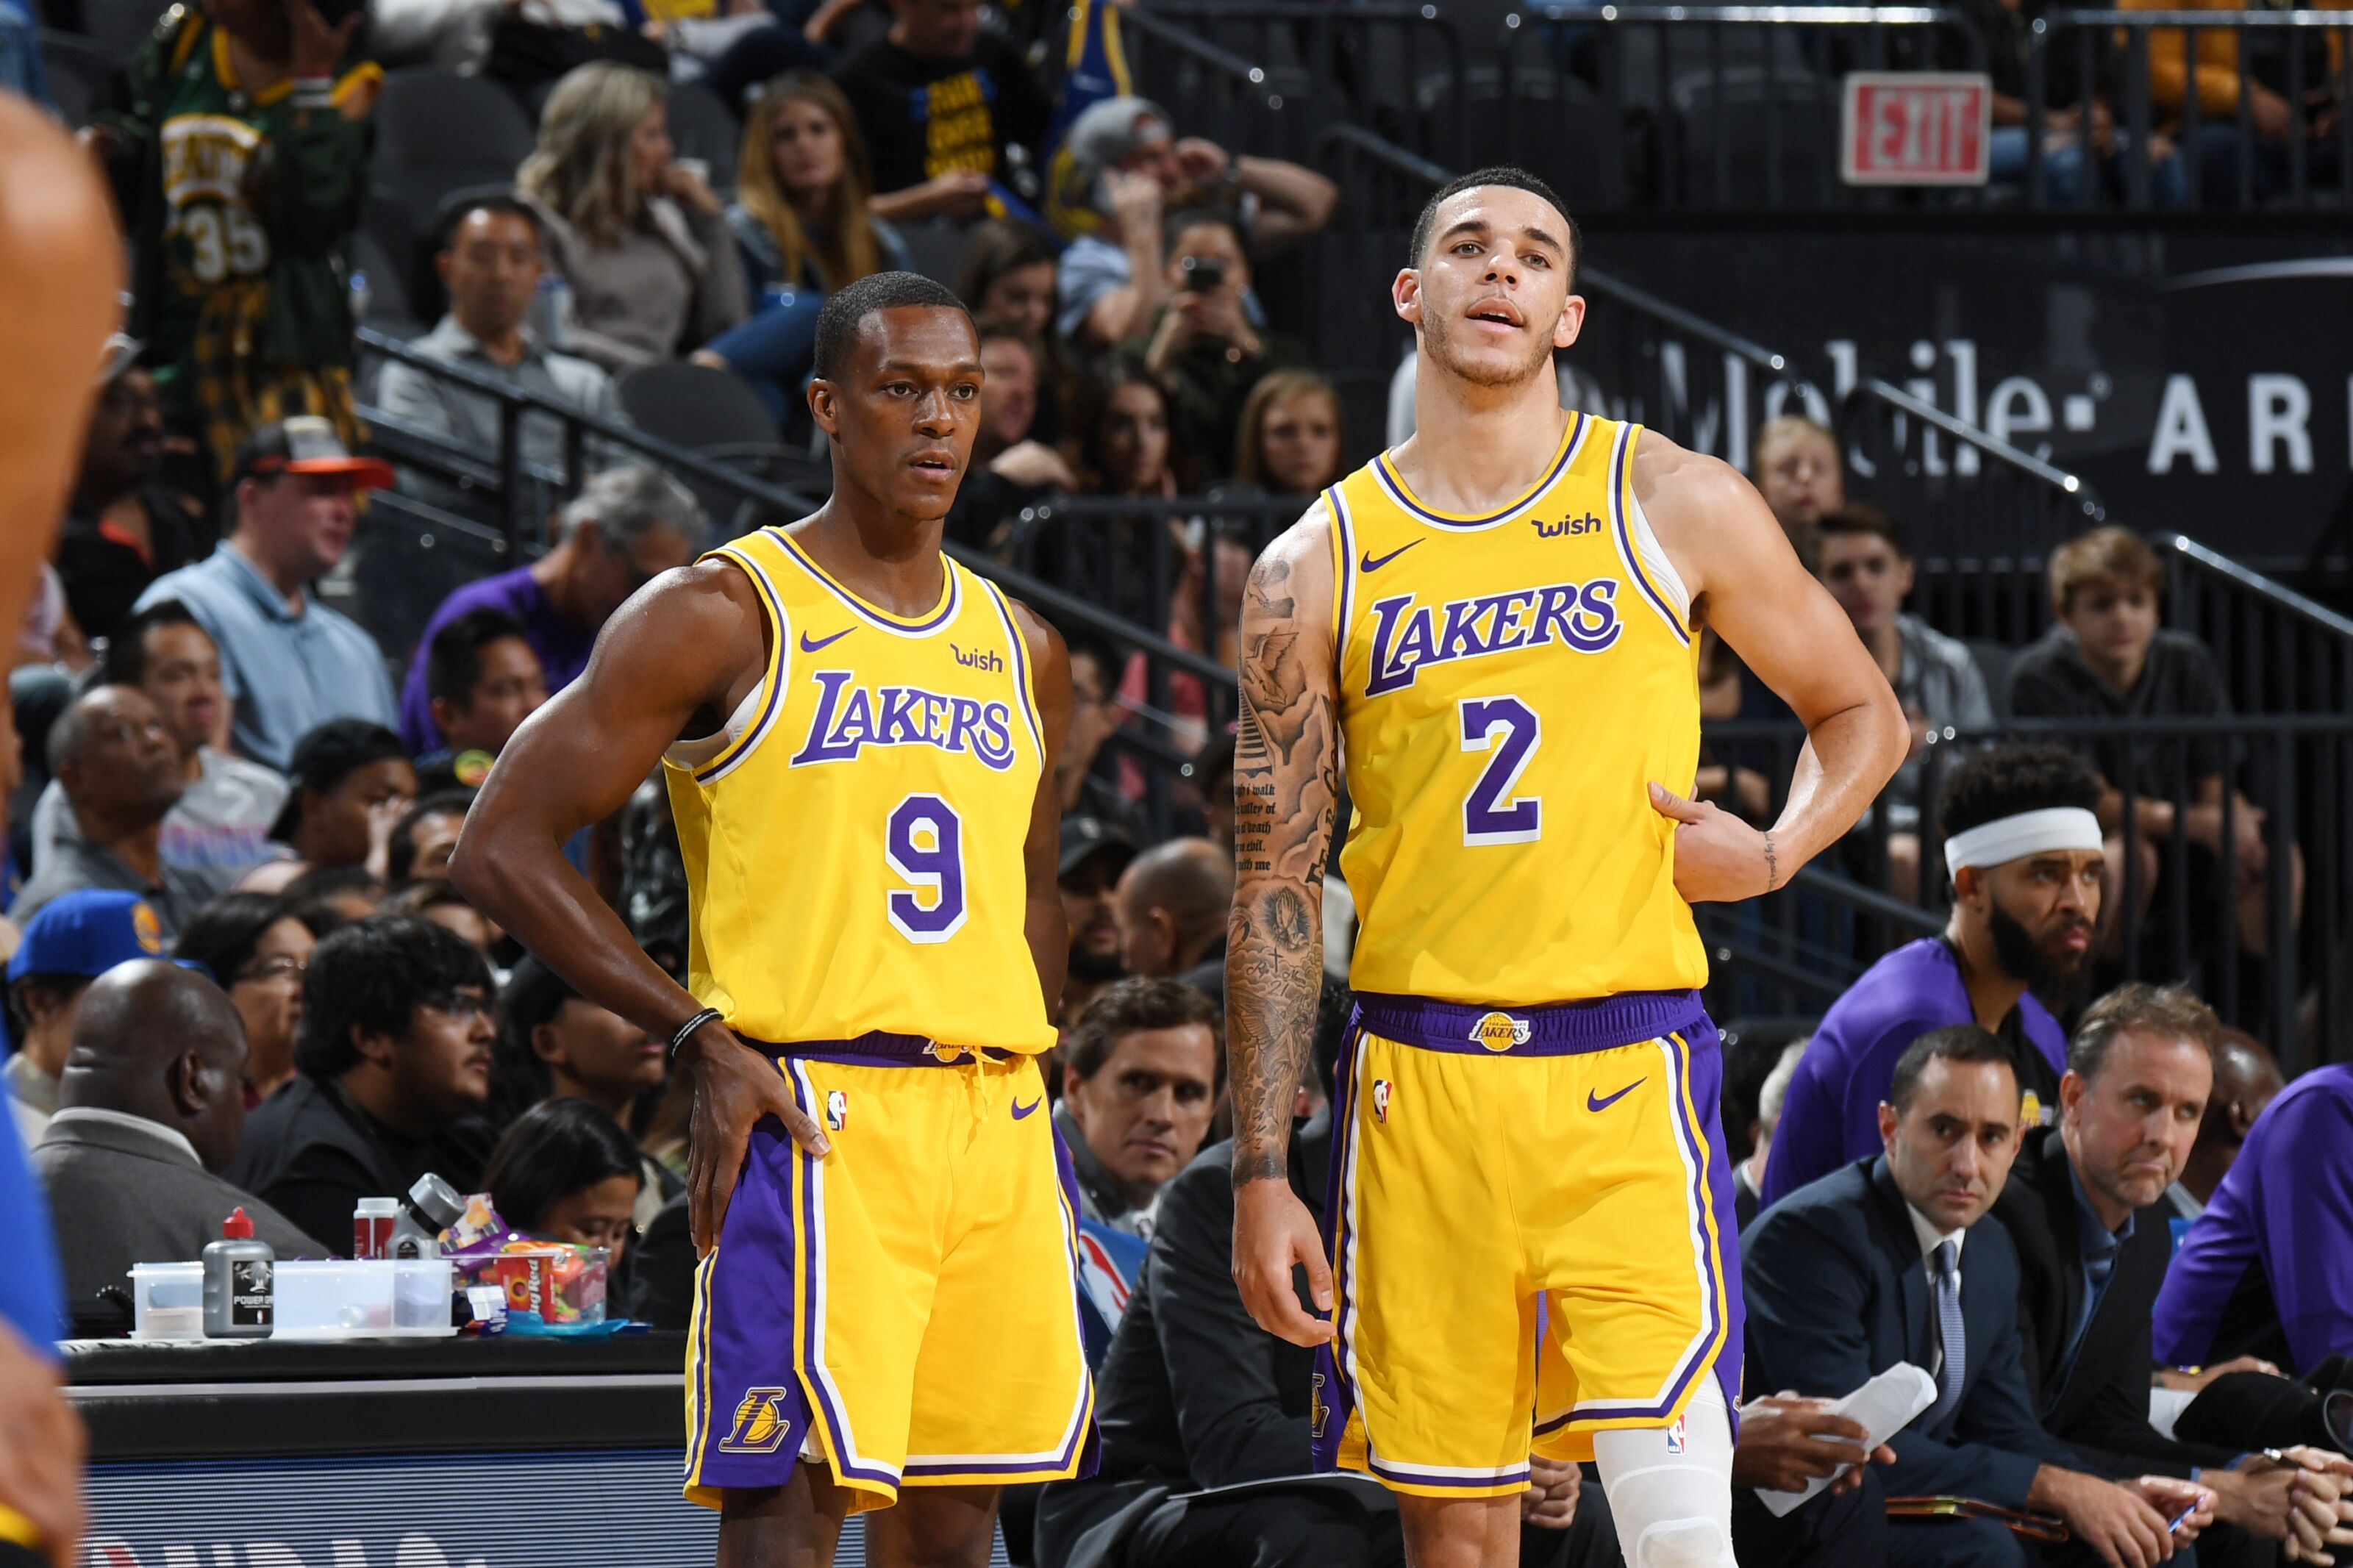 LAS VEGAS, NV- OCTOBER 10: Rajon Rondo #9 and Lonzo Ball #2 of the Los Angeles Lakers look on against the Golden State Warriors during a pre-season game on October 10, 2018 at T-Mobile Arena in Las Vegas, Nevada. NOTE TO USER: User expressly acknowledges and agrees that, by downloading and/or using this Photograph, user is consenting to the terms and conditions of the Getty Images License Agreement. Mandatory Copyright Notice: Copyright 2018 NBAE (Photo by Andrew D. Bernstein/NBAE via Getty Images)